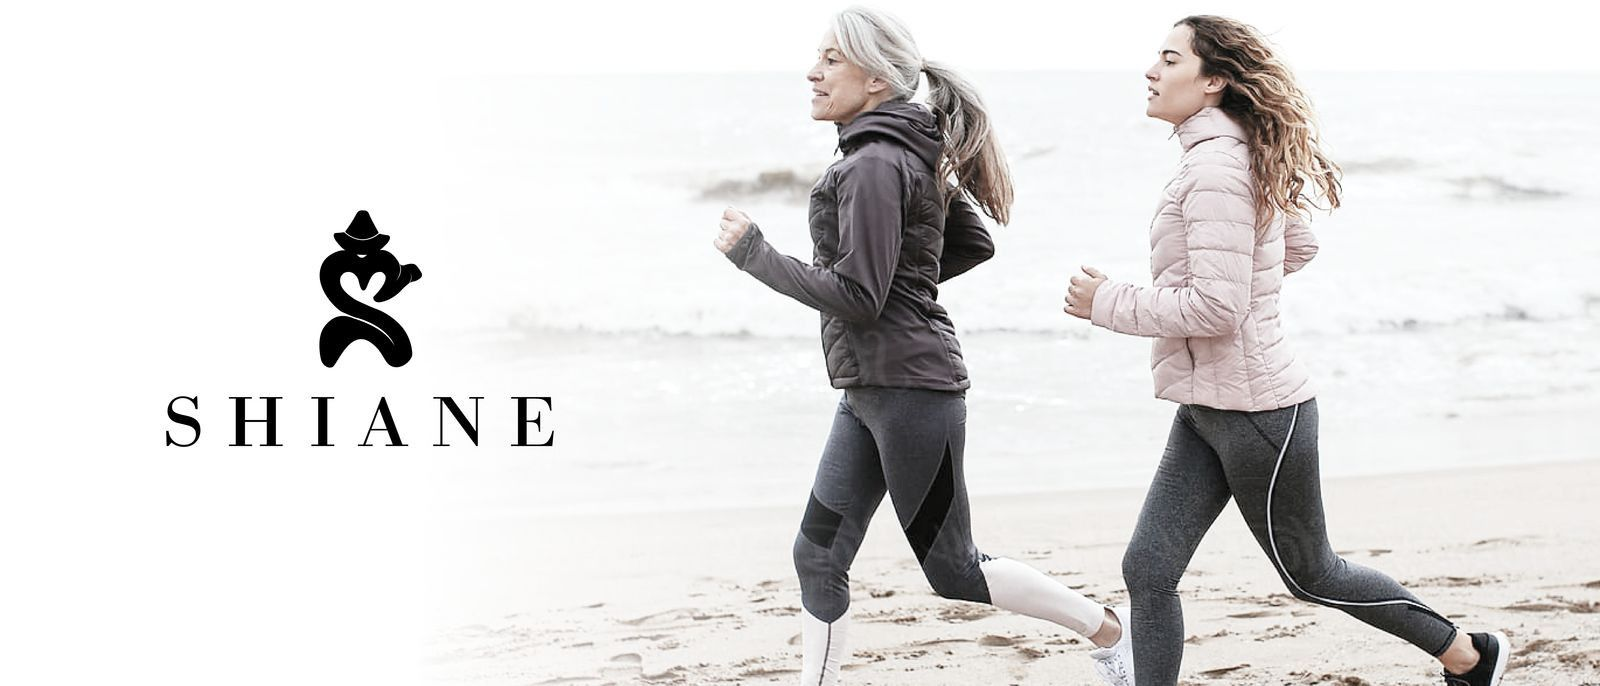 Two woman jogging on the beach